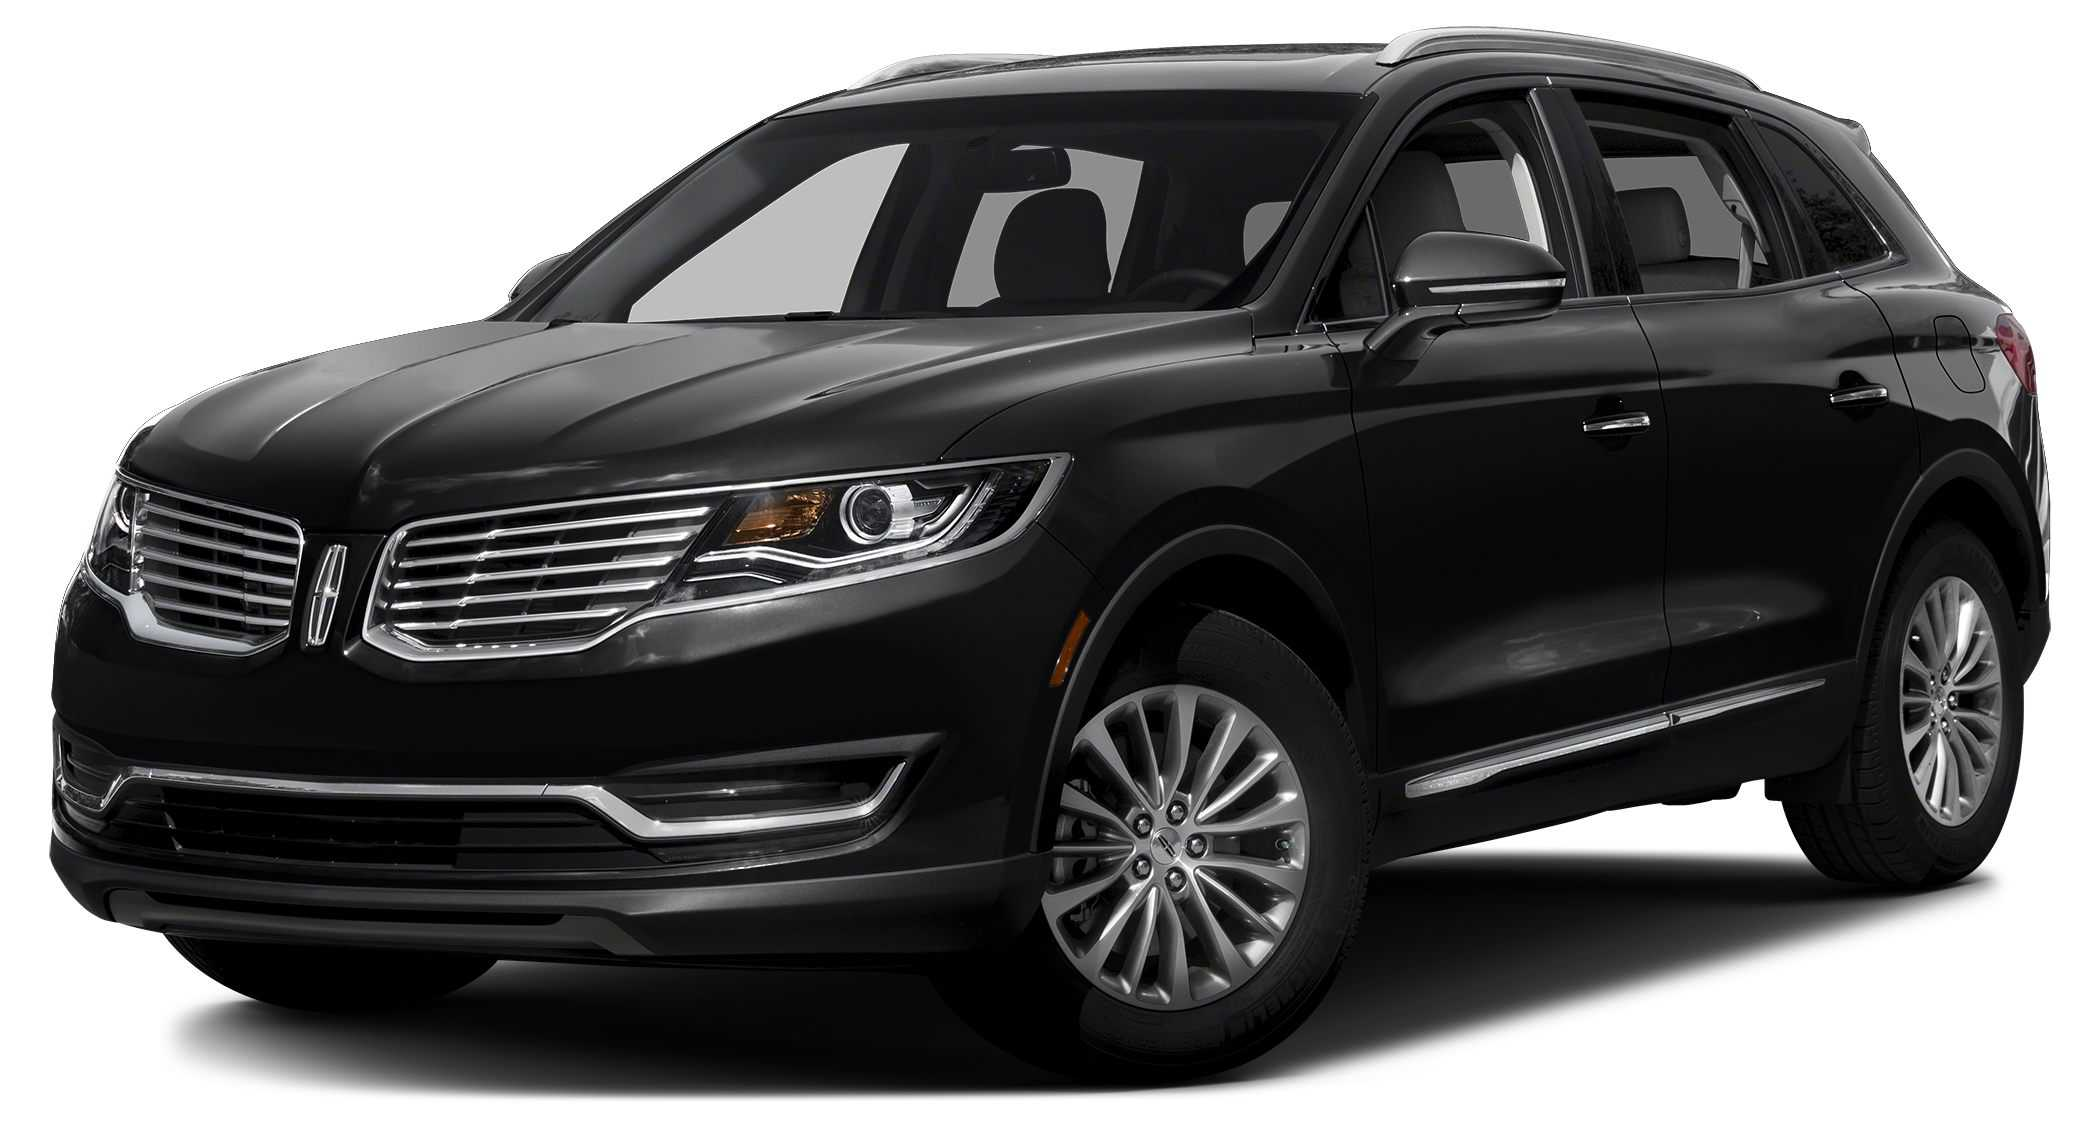 2017 lincoln mkx for sale in norwalk oh 2lmpj8jr8hbl38232. Black Bedroom Furniture Sets. Home Design Ideas